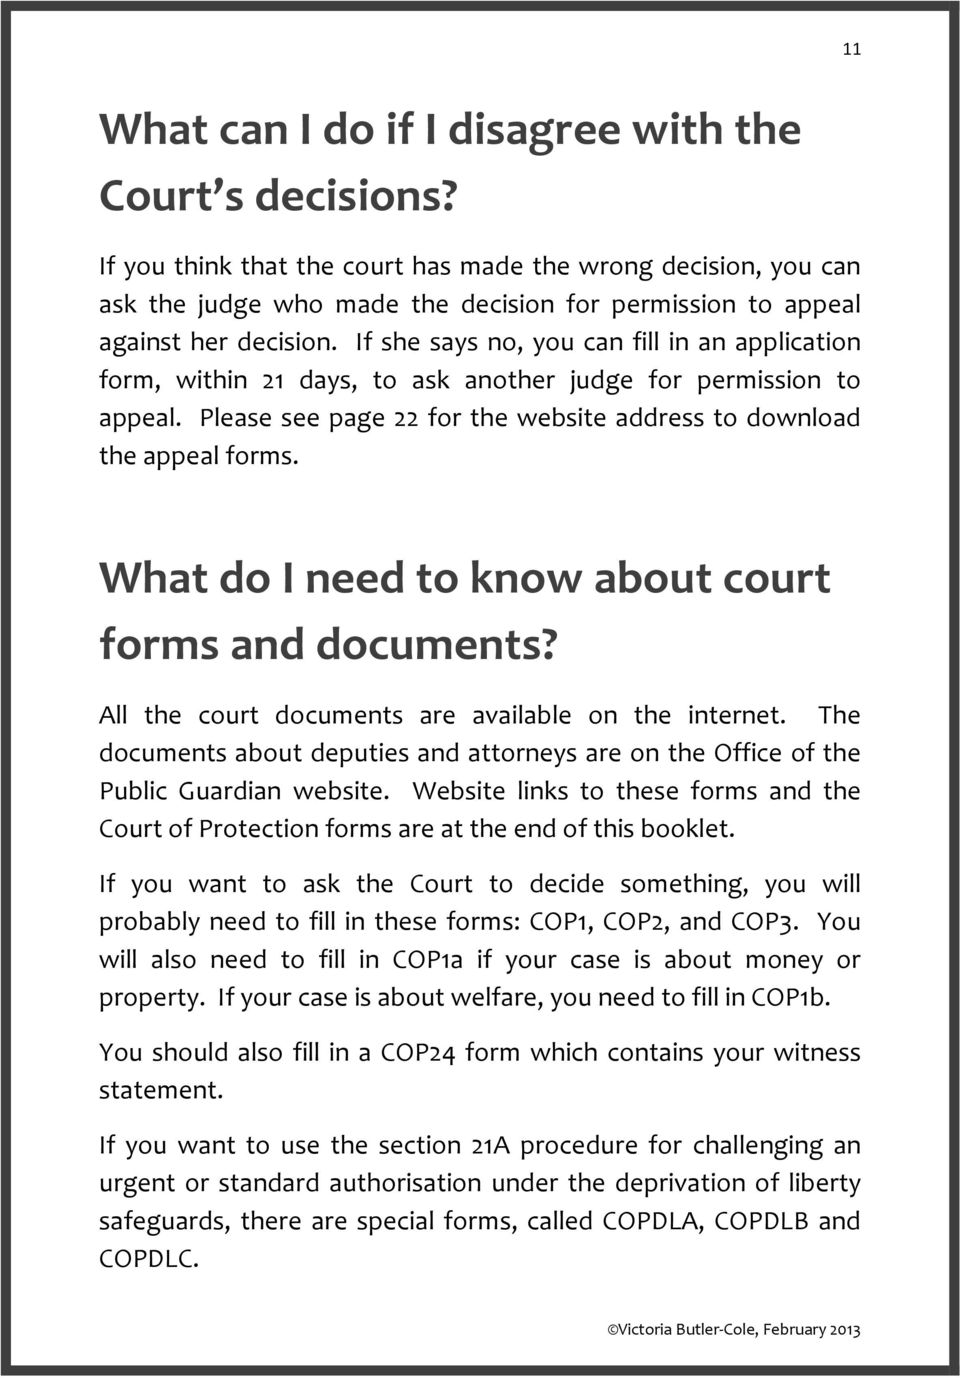 If she says no, you can fill in an application form, within 21 days, to ask another judge for permission to appeal. Please see page 22 for the website address to download the appeal forms.